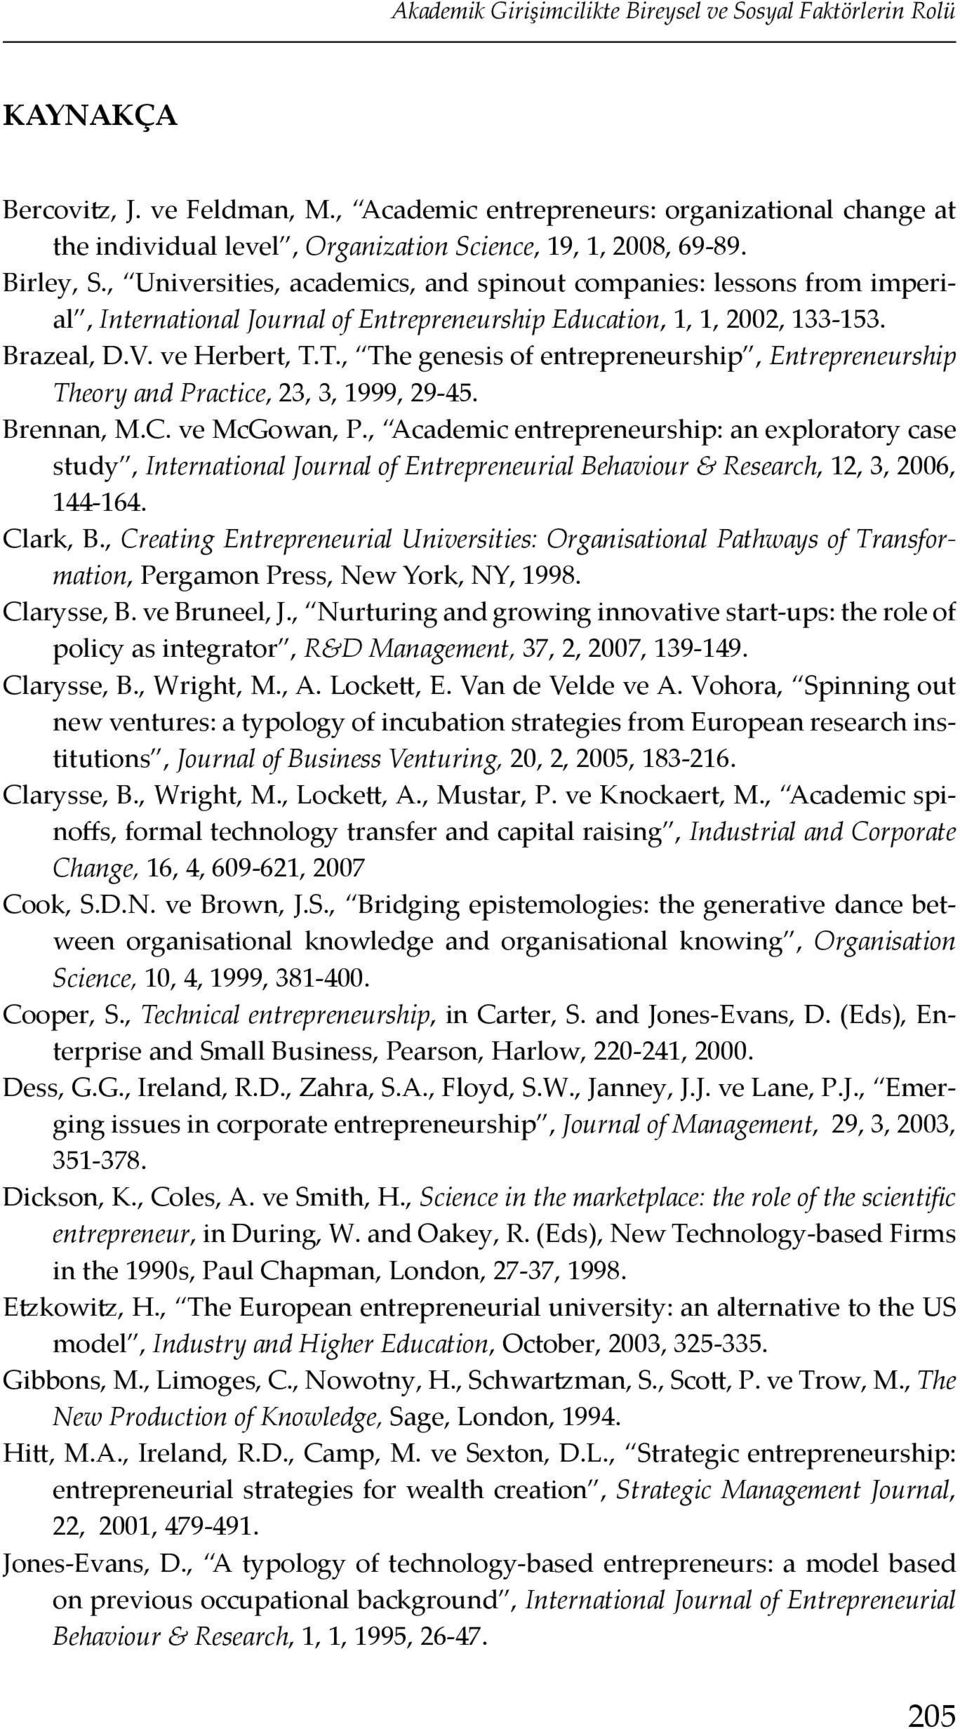 , Universities, academics, and spinout companies: lessons from imperial, International Journal of Entrepreneurship Education, 1, 1, 2002, 133-153. Brazeal, D.V. ve Herbert, T.